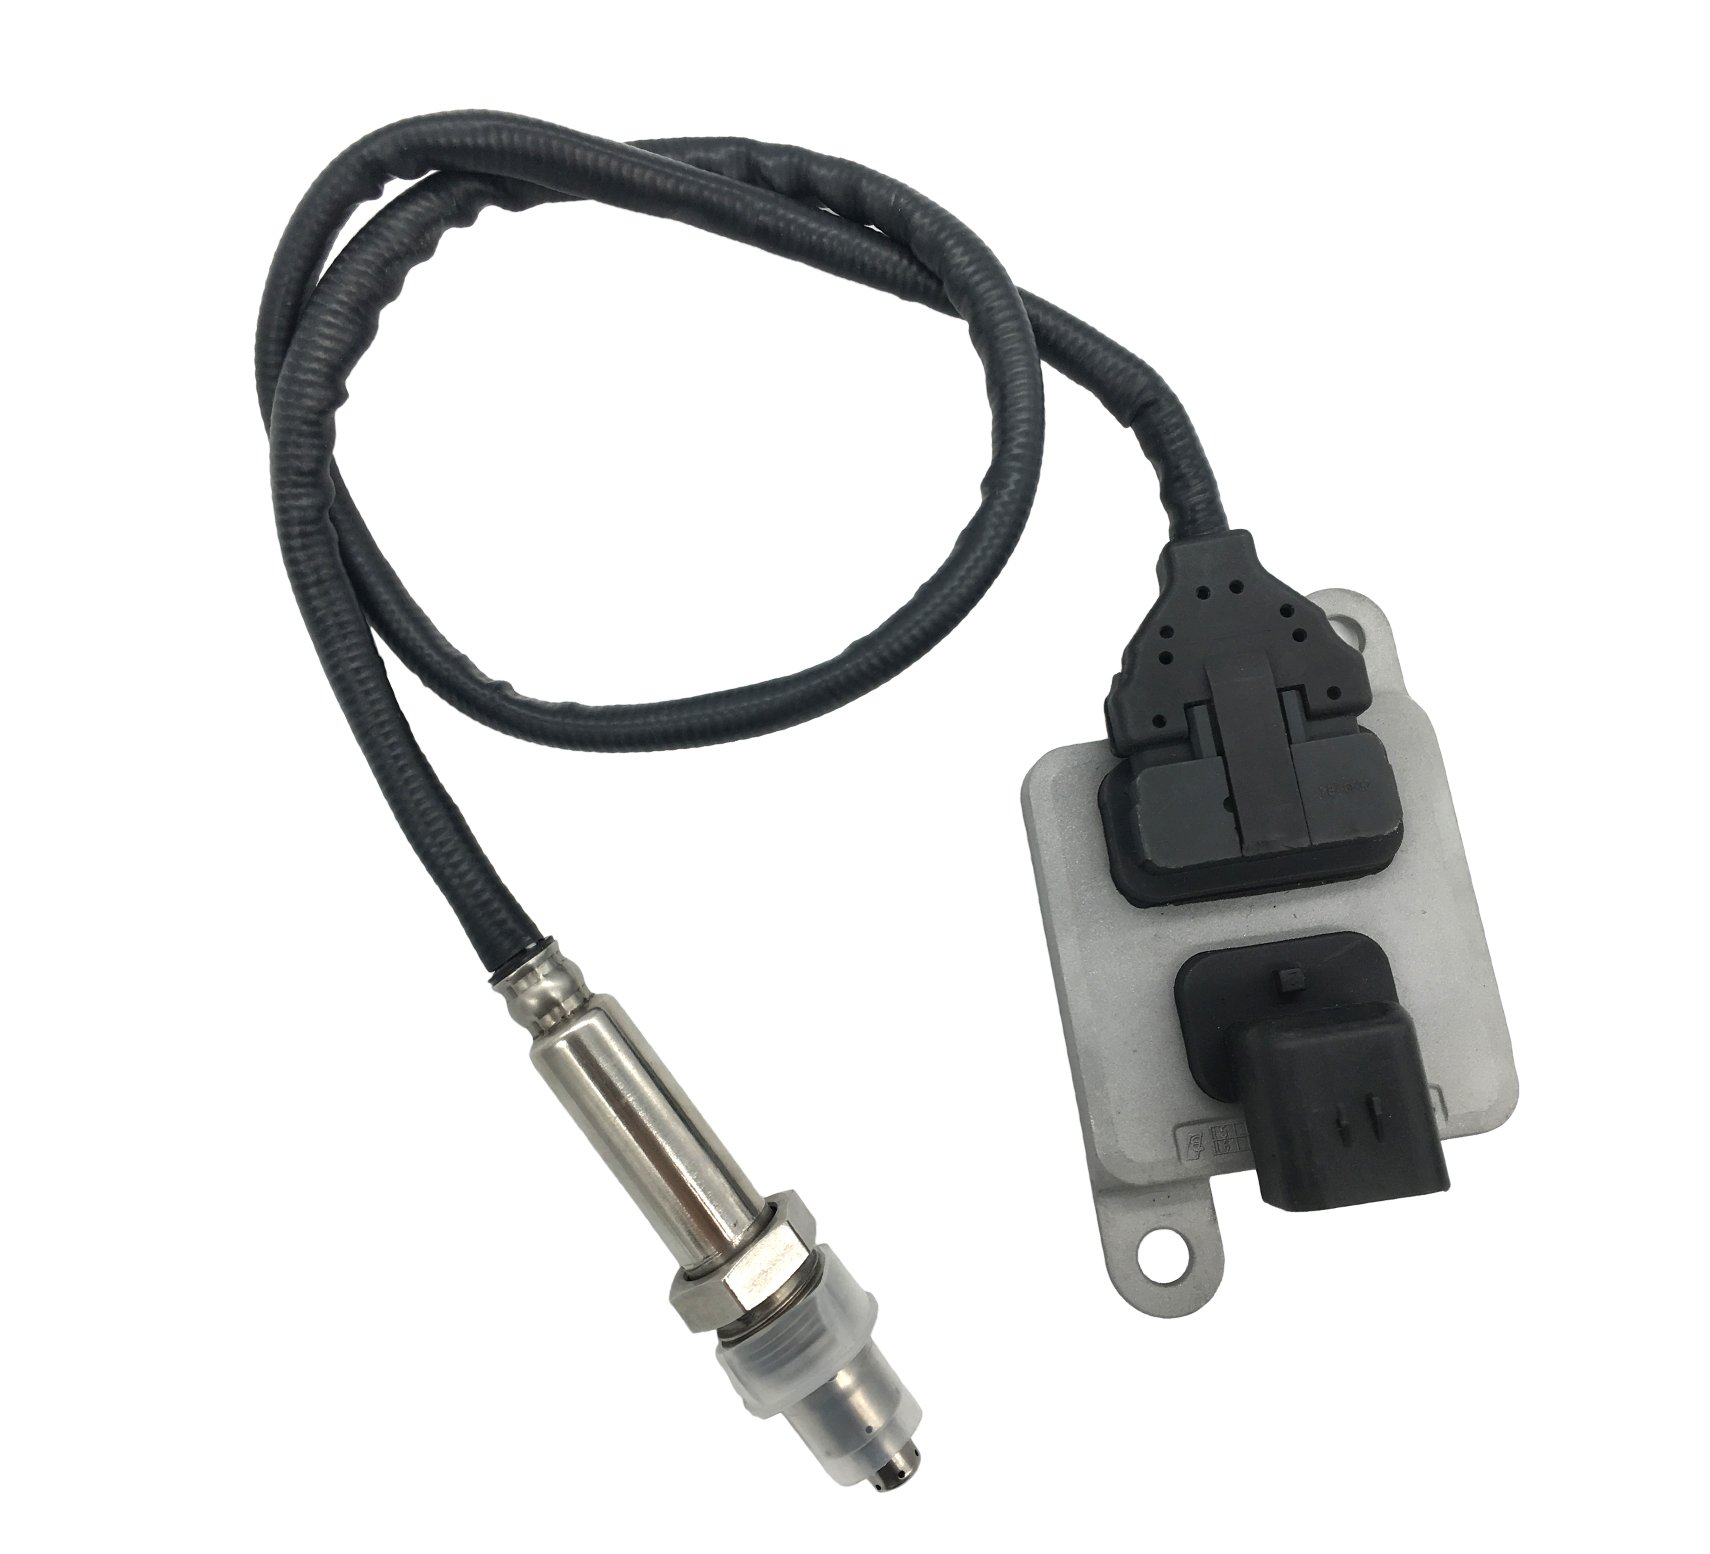 Nox Sensor Nitrogen Oxide Sensor RE553440 5WK9 6784 by Germban